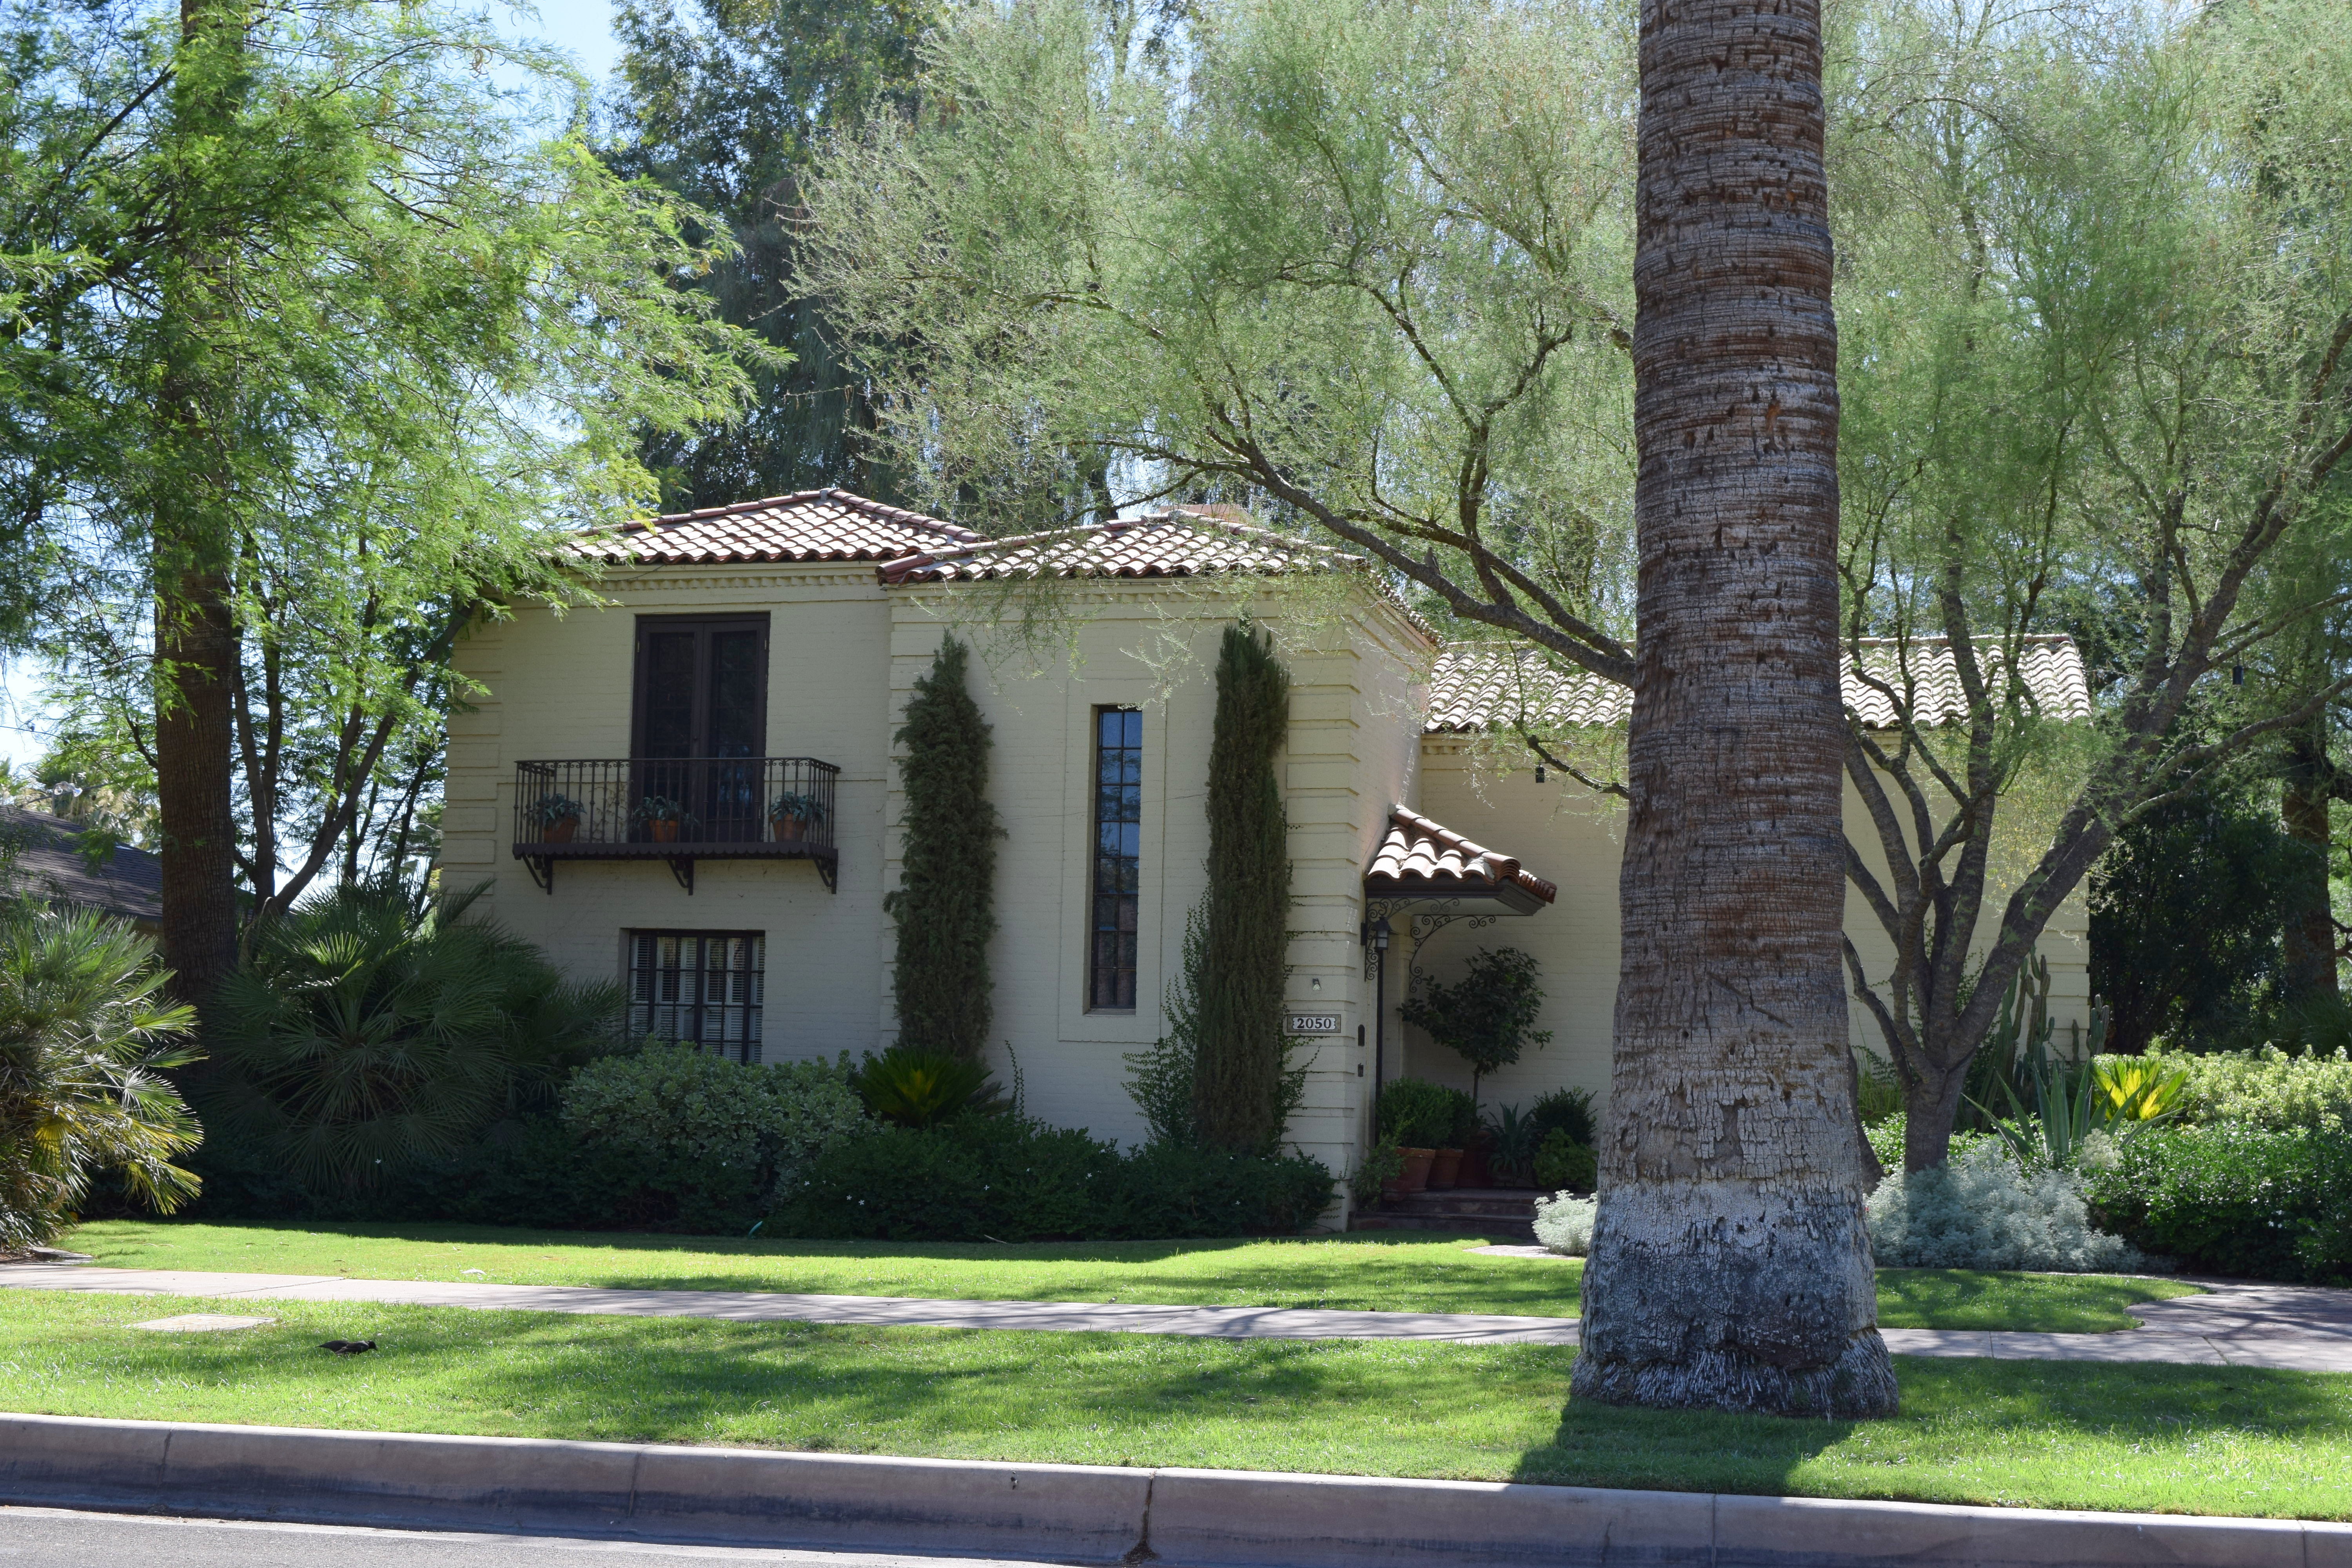 Homes for sale in encanto palmcroft phoenix az a for Victorian houses for sale in arizona